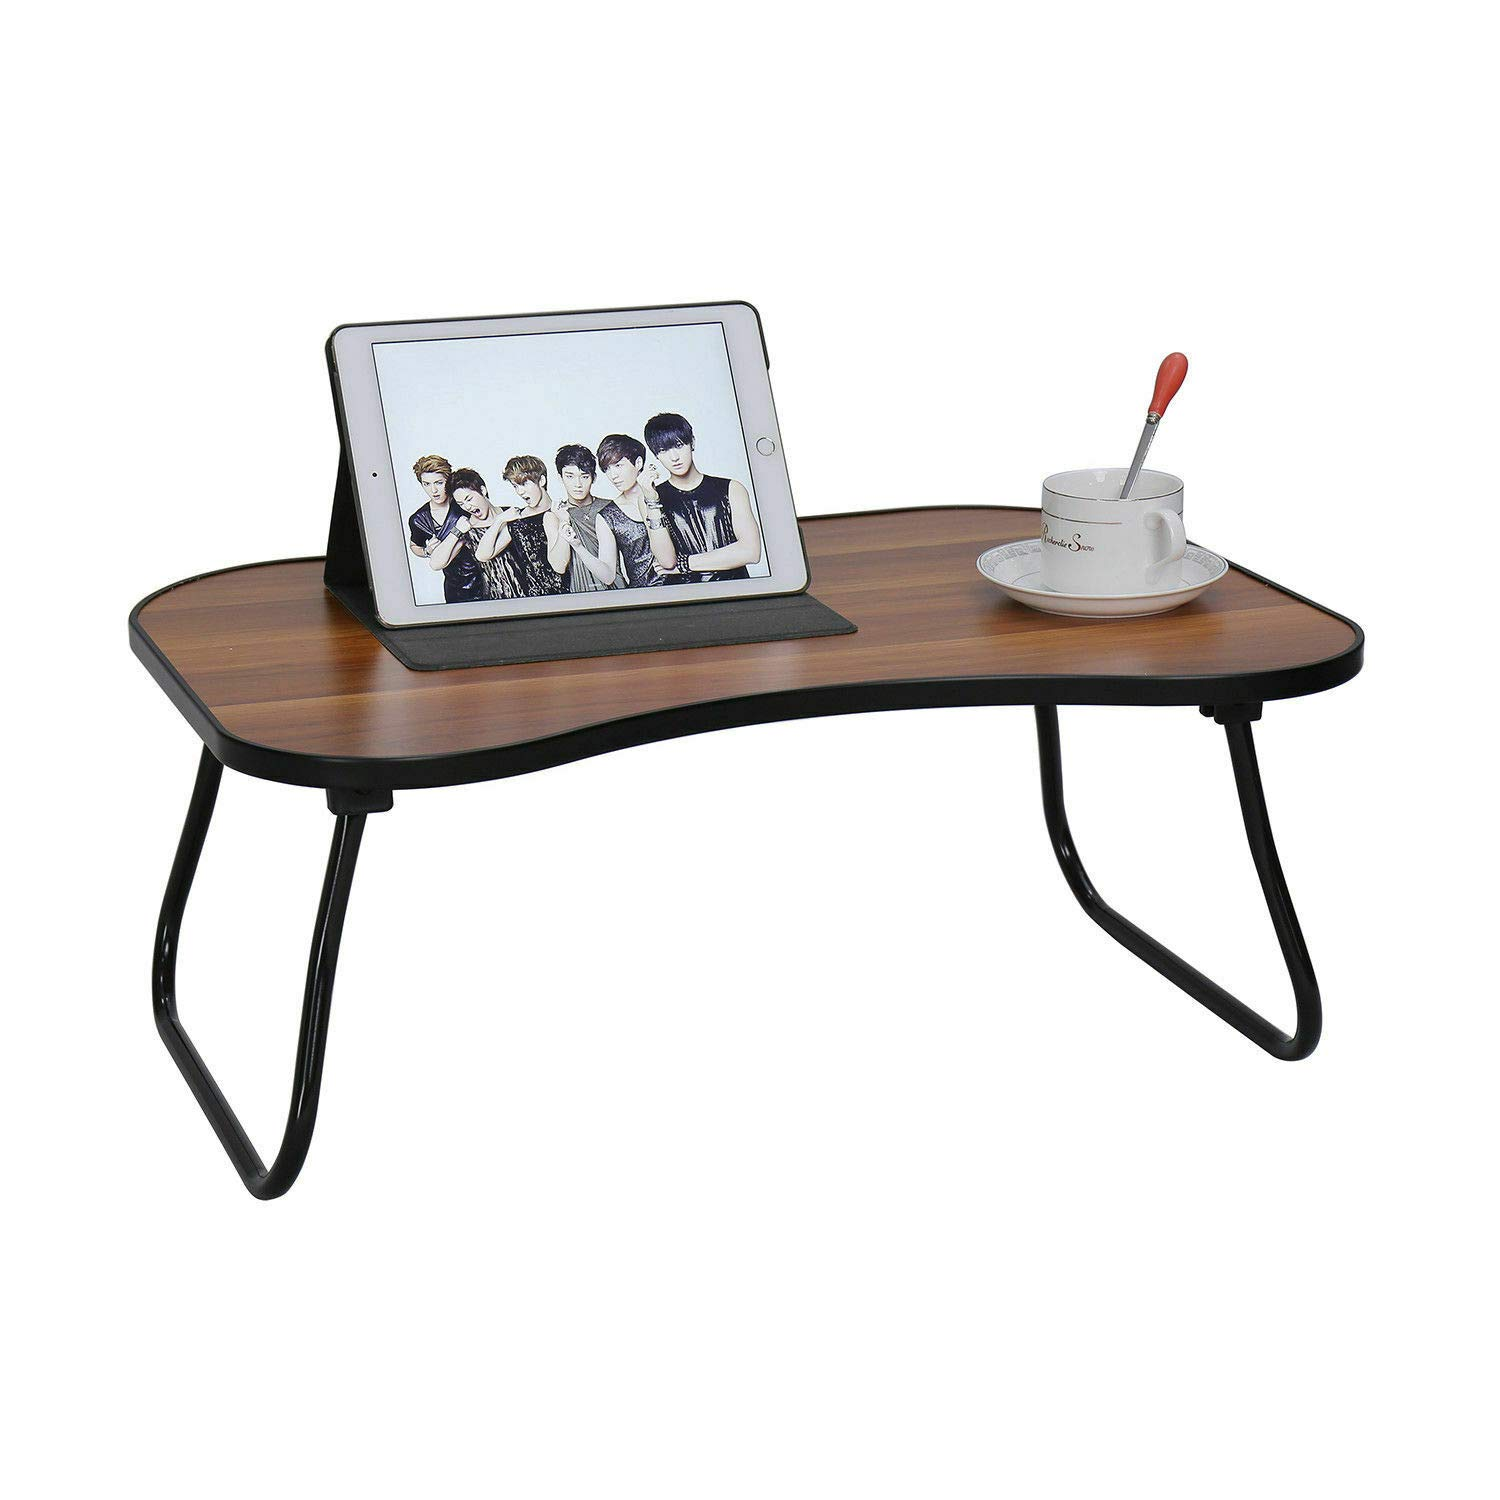 Folding Laptop Portable Standing Bed Desk Vertical Bed Table Portable Floor Breakfast Reading Tray Bracket Outdoor Camping Table lamp Mini Picnic Table